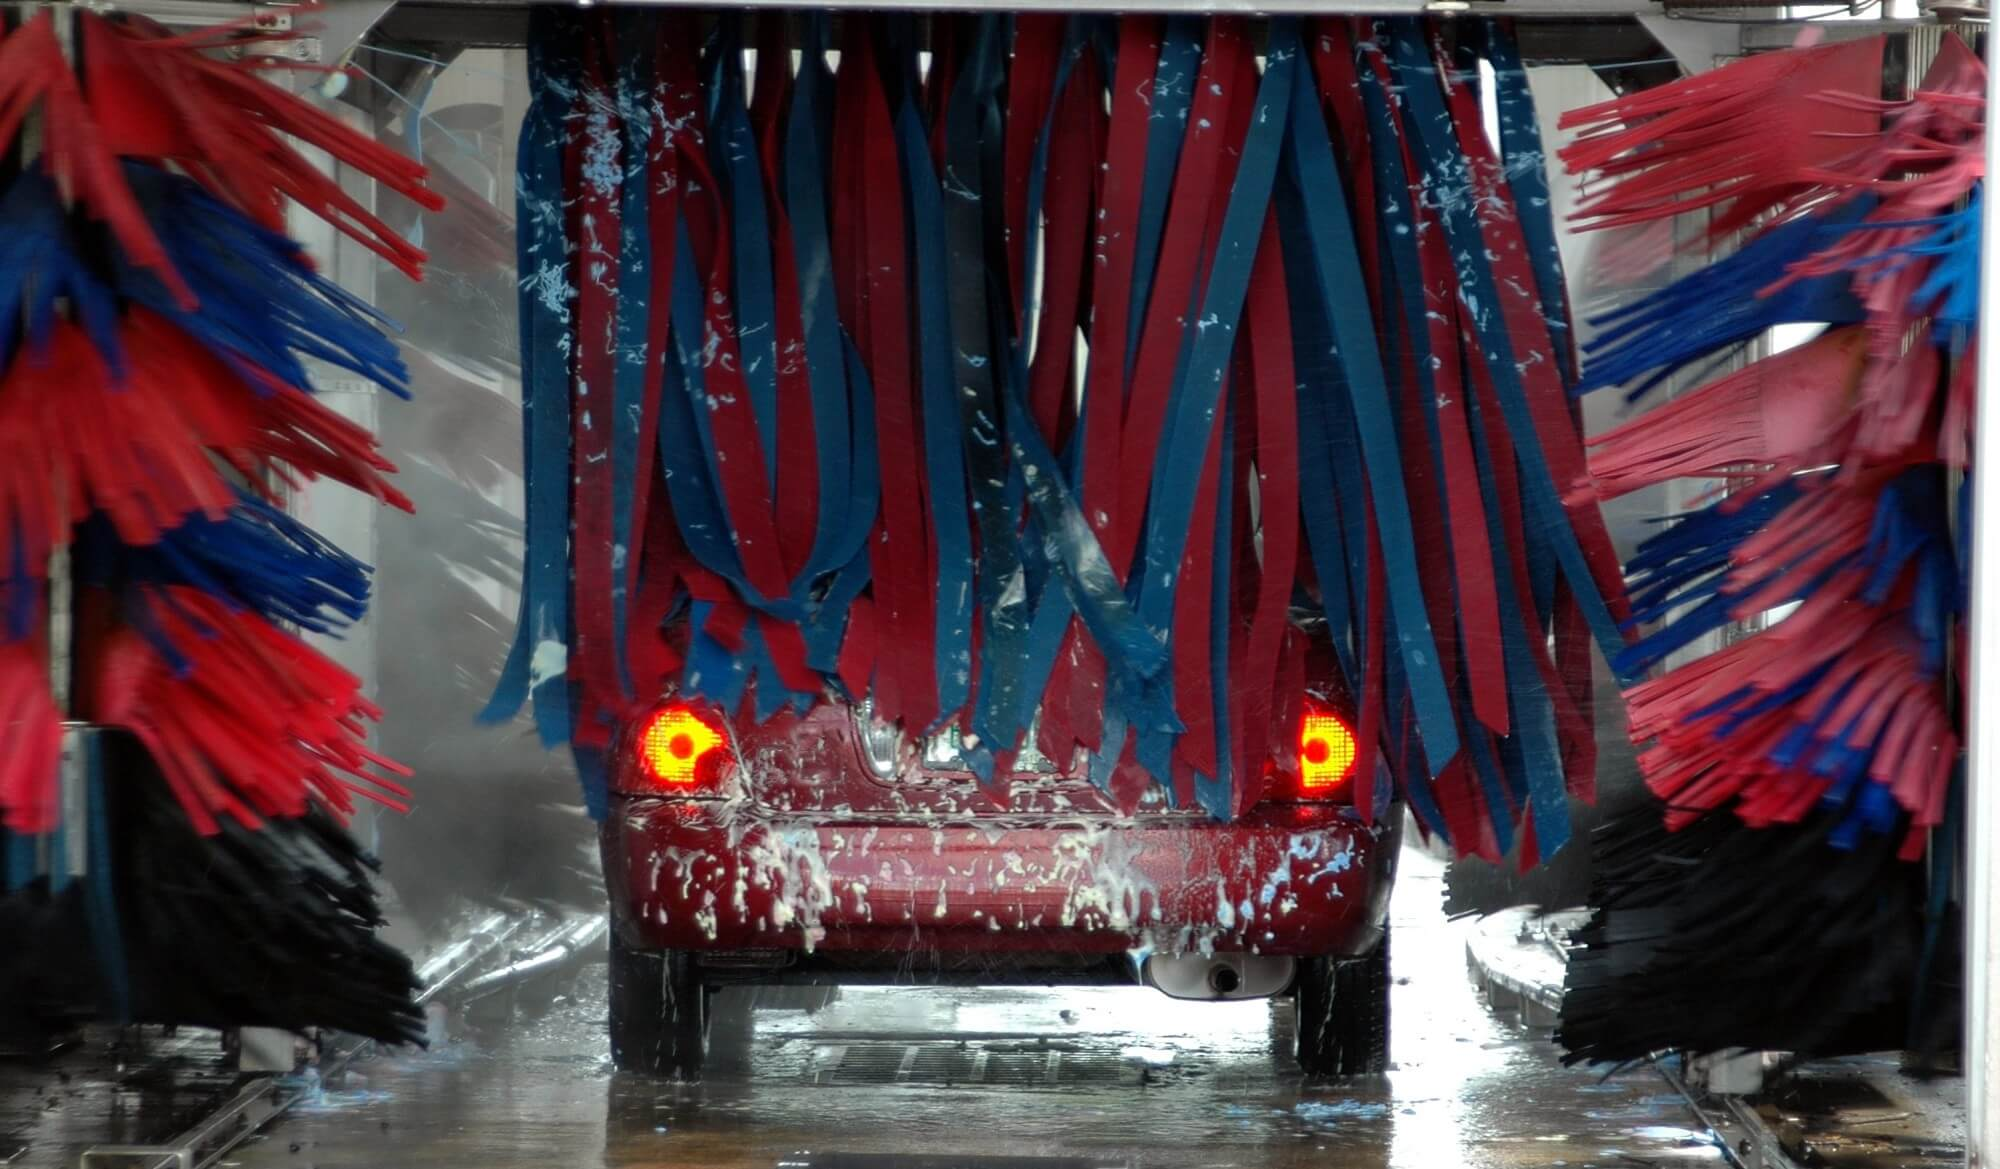 QOTD: What's the Best Way to Remove Water Spots on Car?